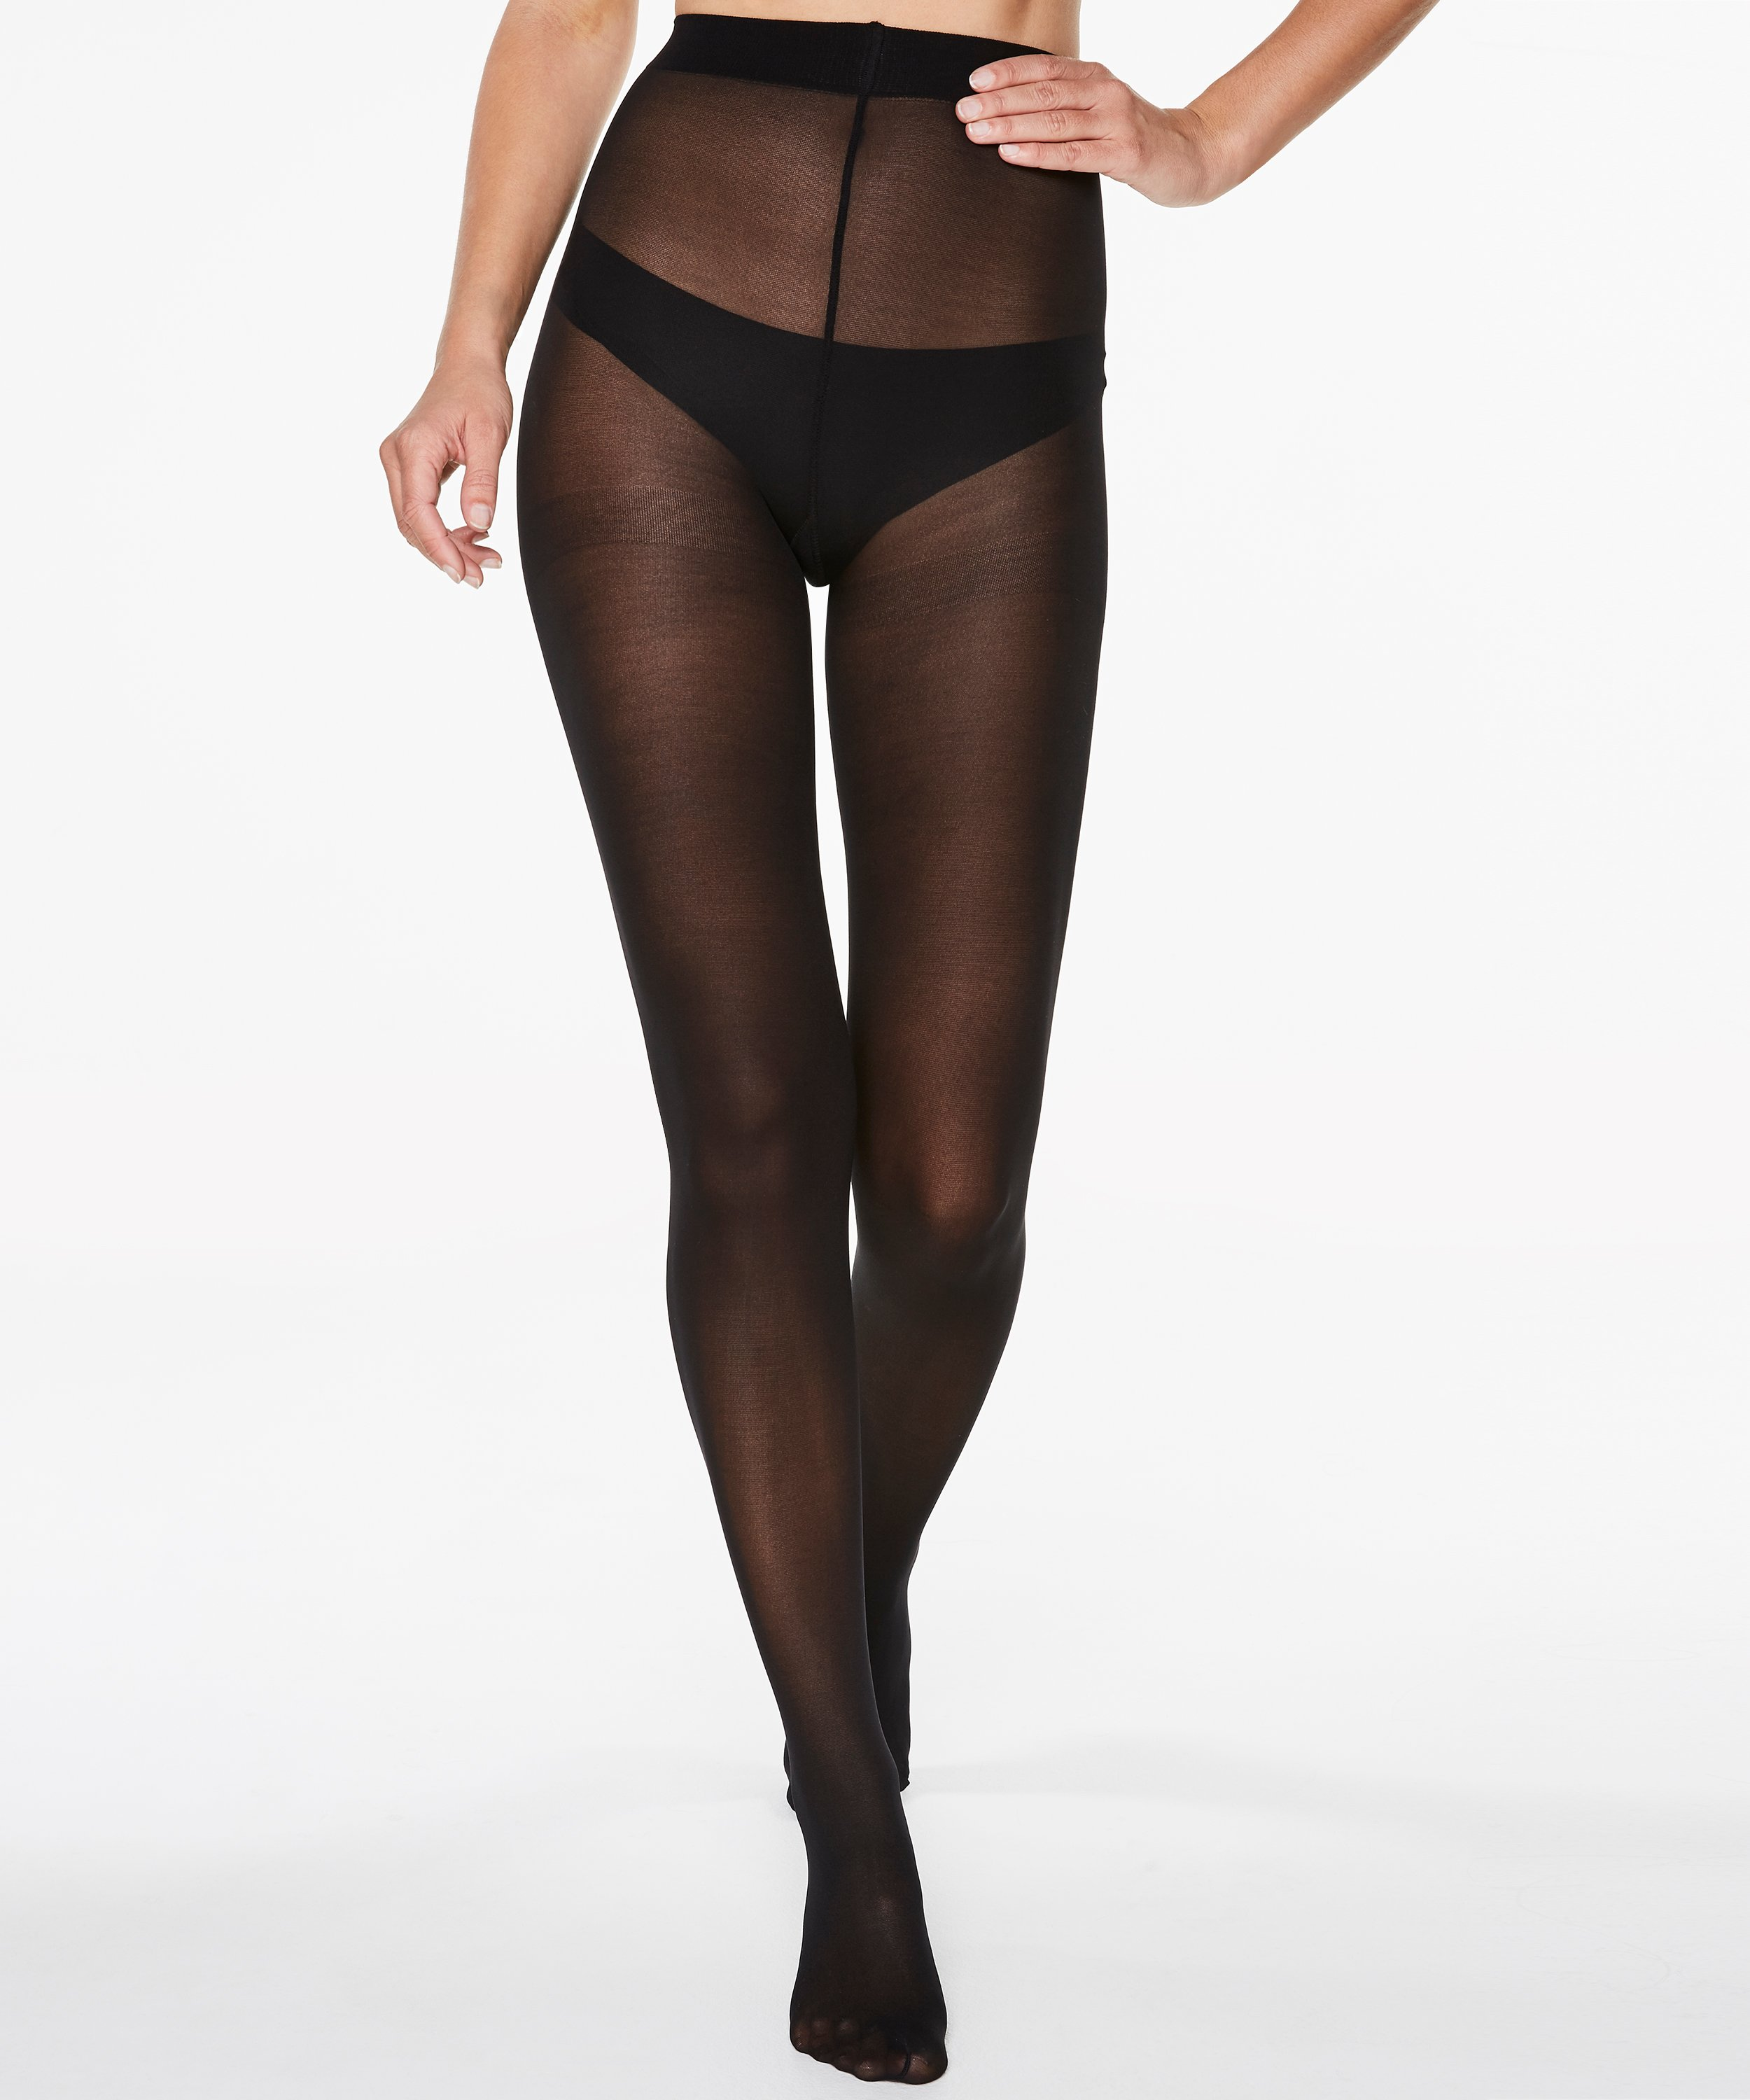 Opaque Panty 40 Denier, Zwart, main